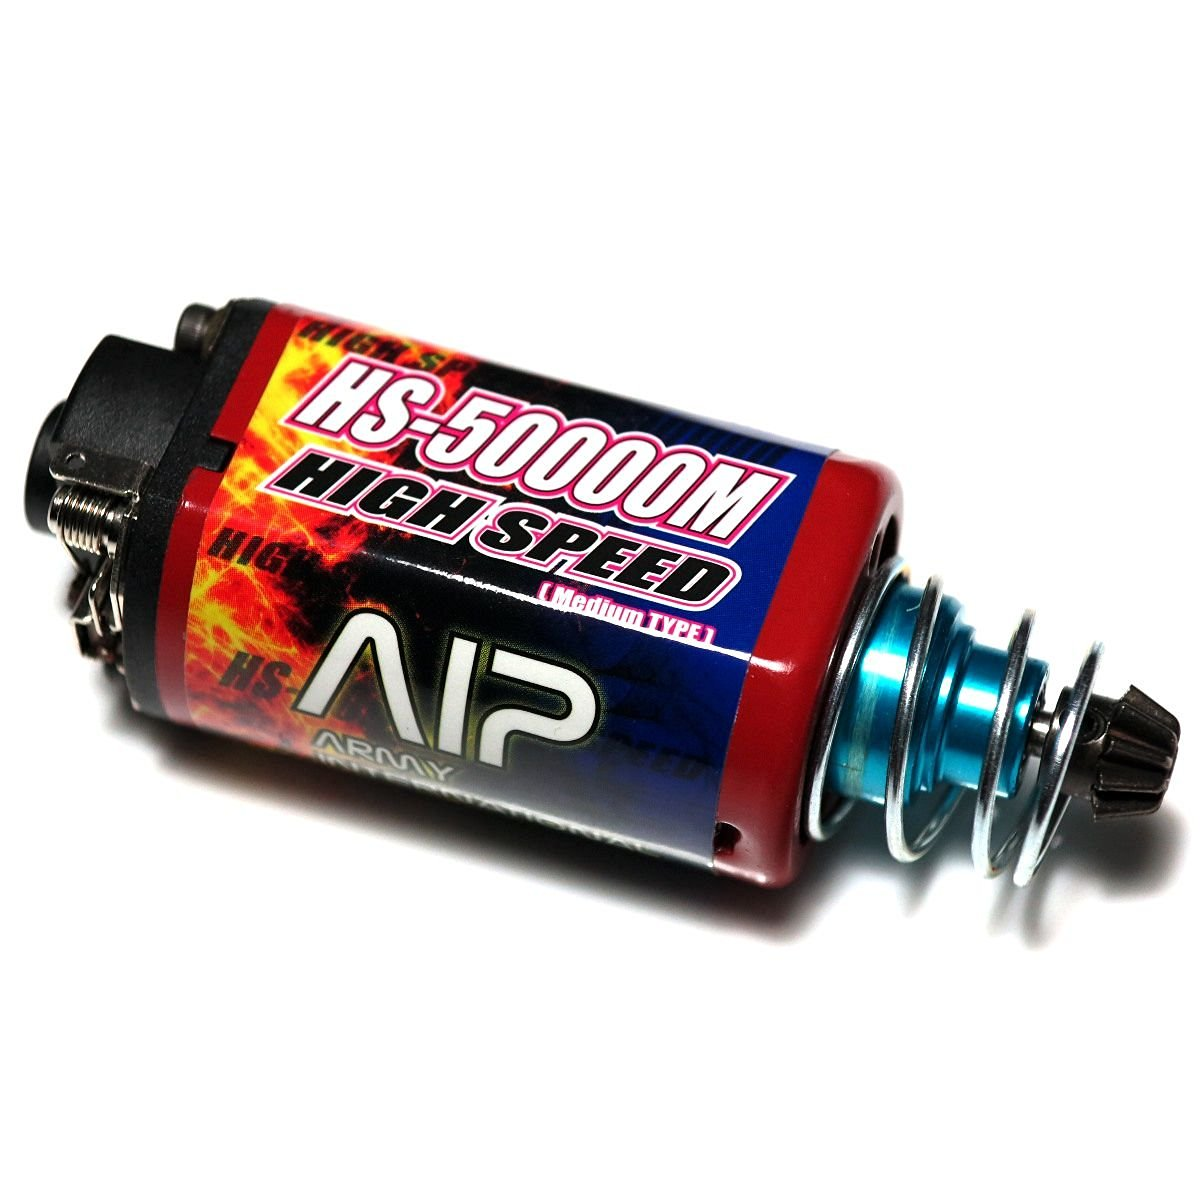 AEG Airsoft Wargame Shooting Gear AIP AIP019 AIP High Speed AEG Motor HS-50000 (Medium Type)